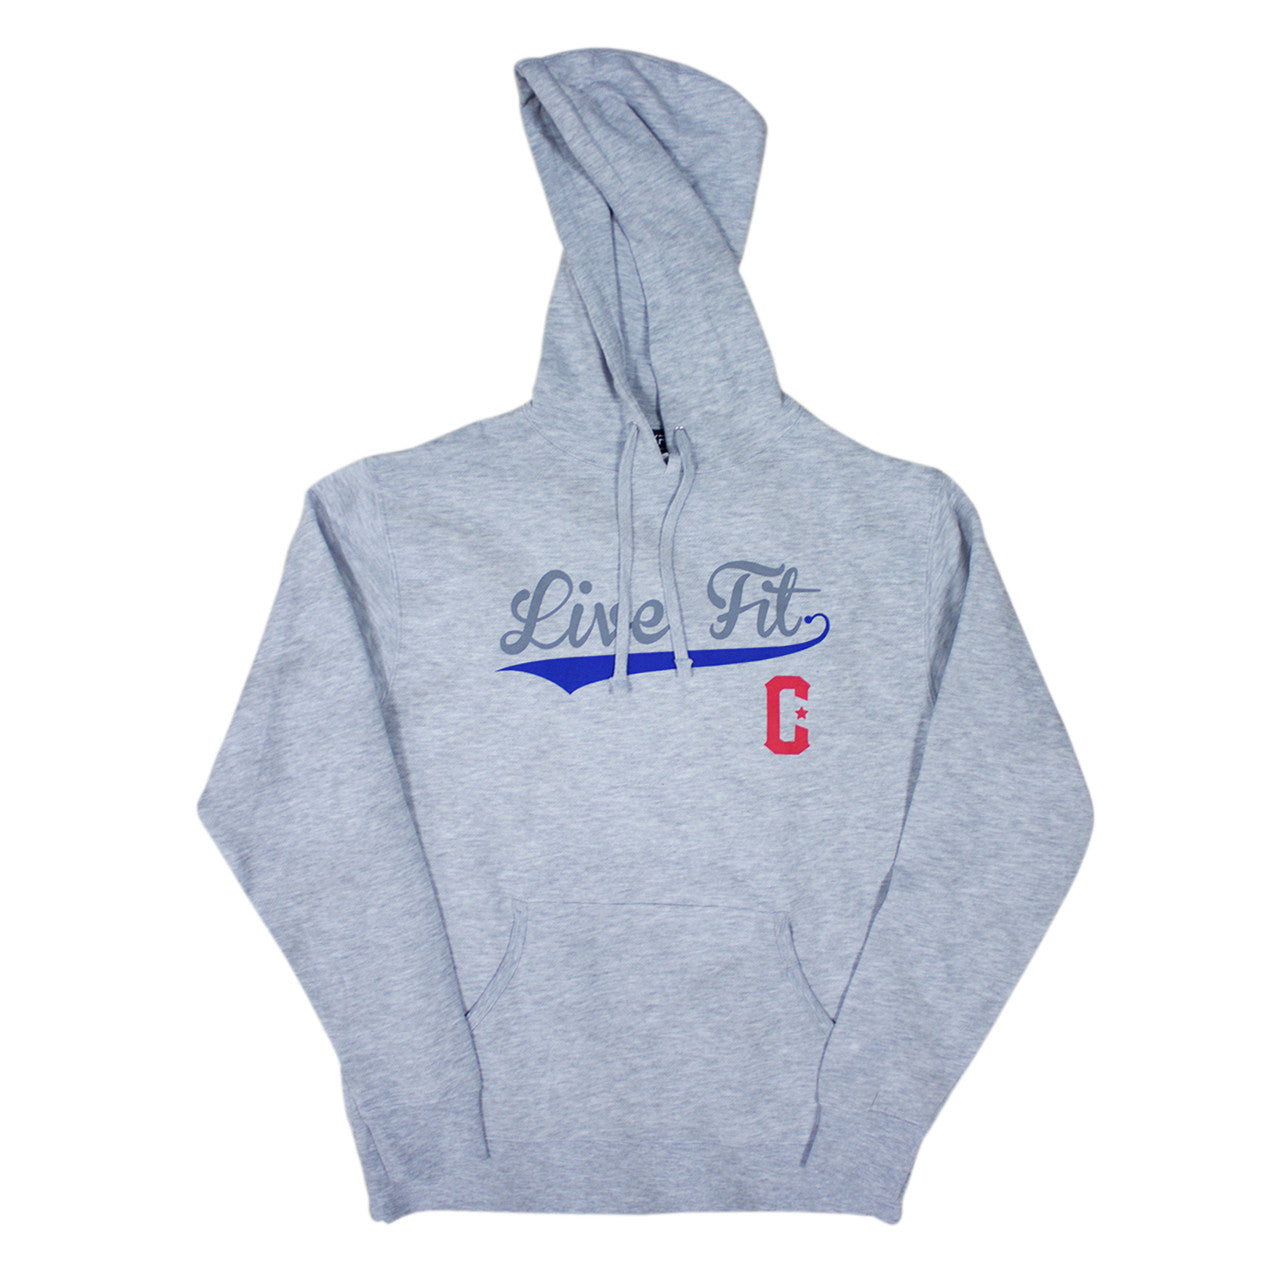 BallPark Hoodie- Heather Grey